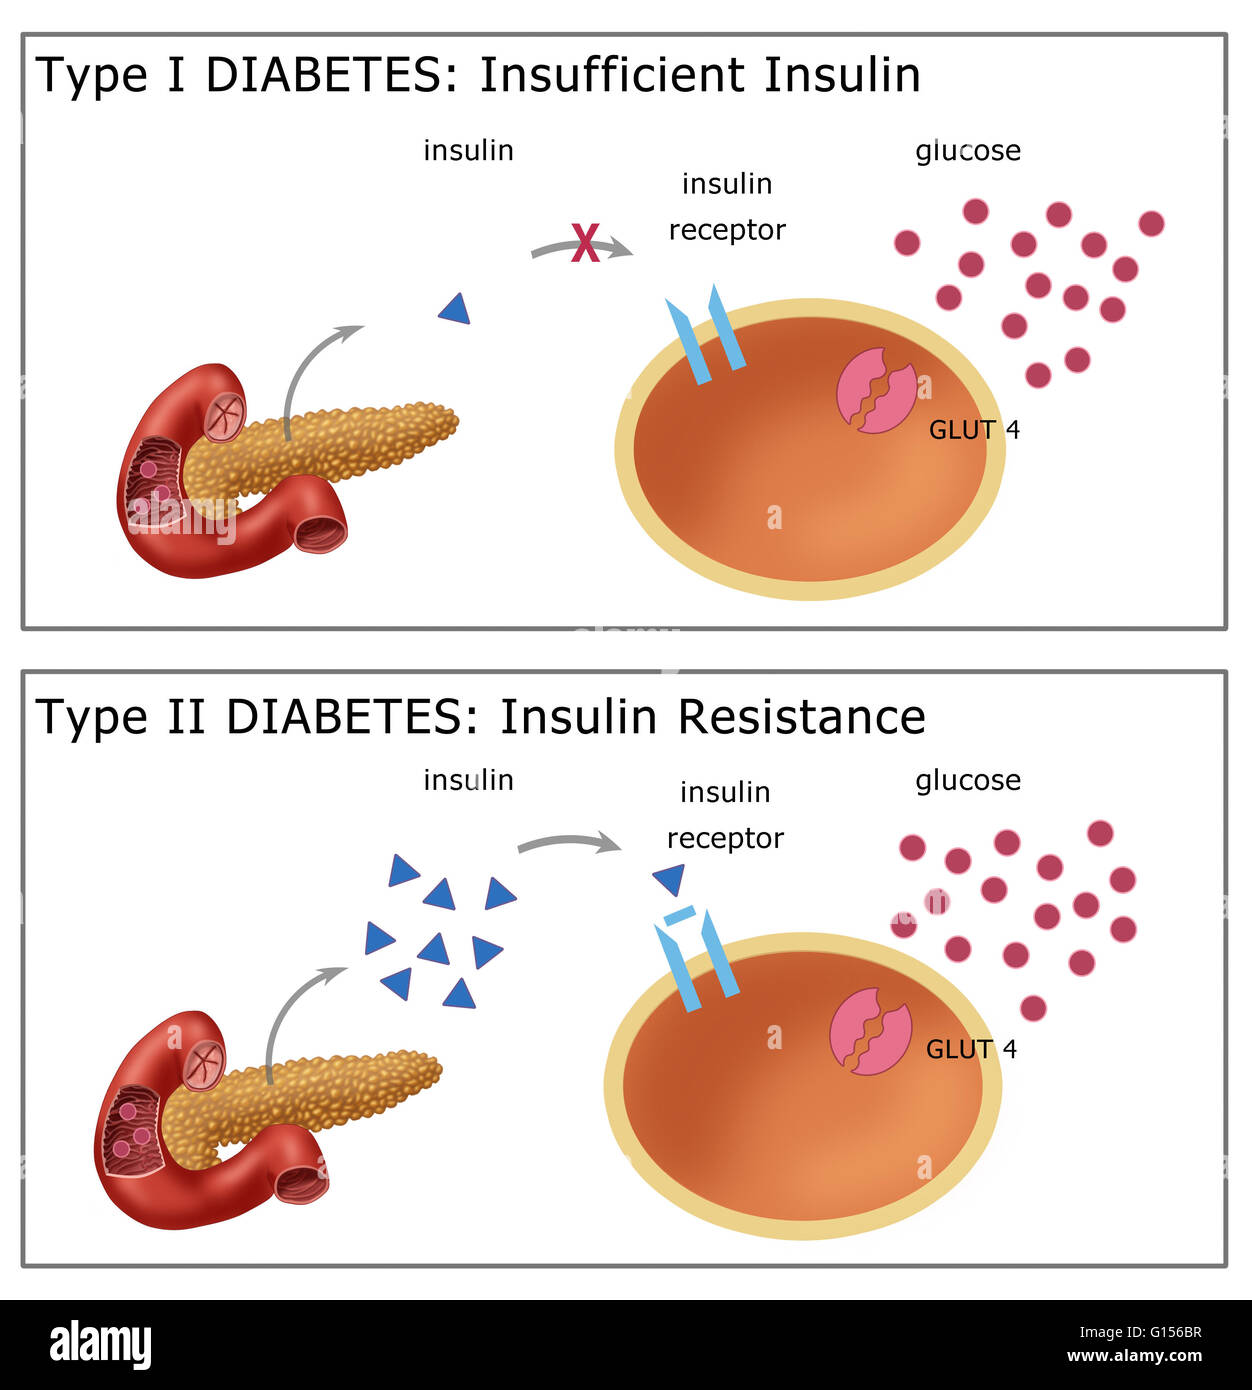 type 1 and type ii diabetes Insulin and glucagon are released by β and α cells of the pancreas to control blood glucose concentration and causes and treatment of type i and type ii diabetes.